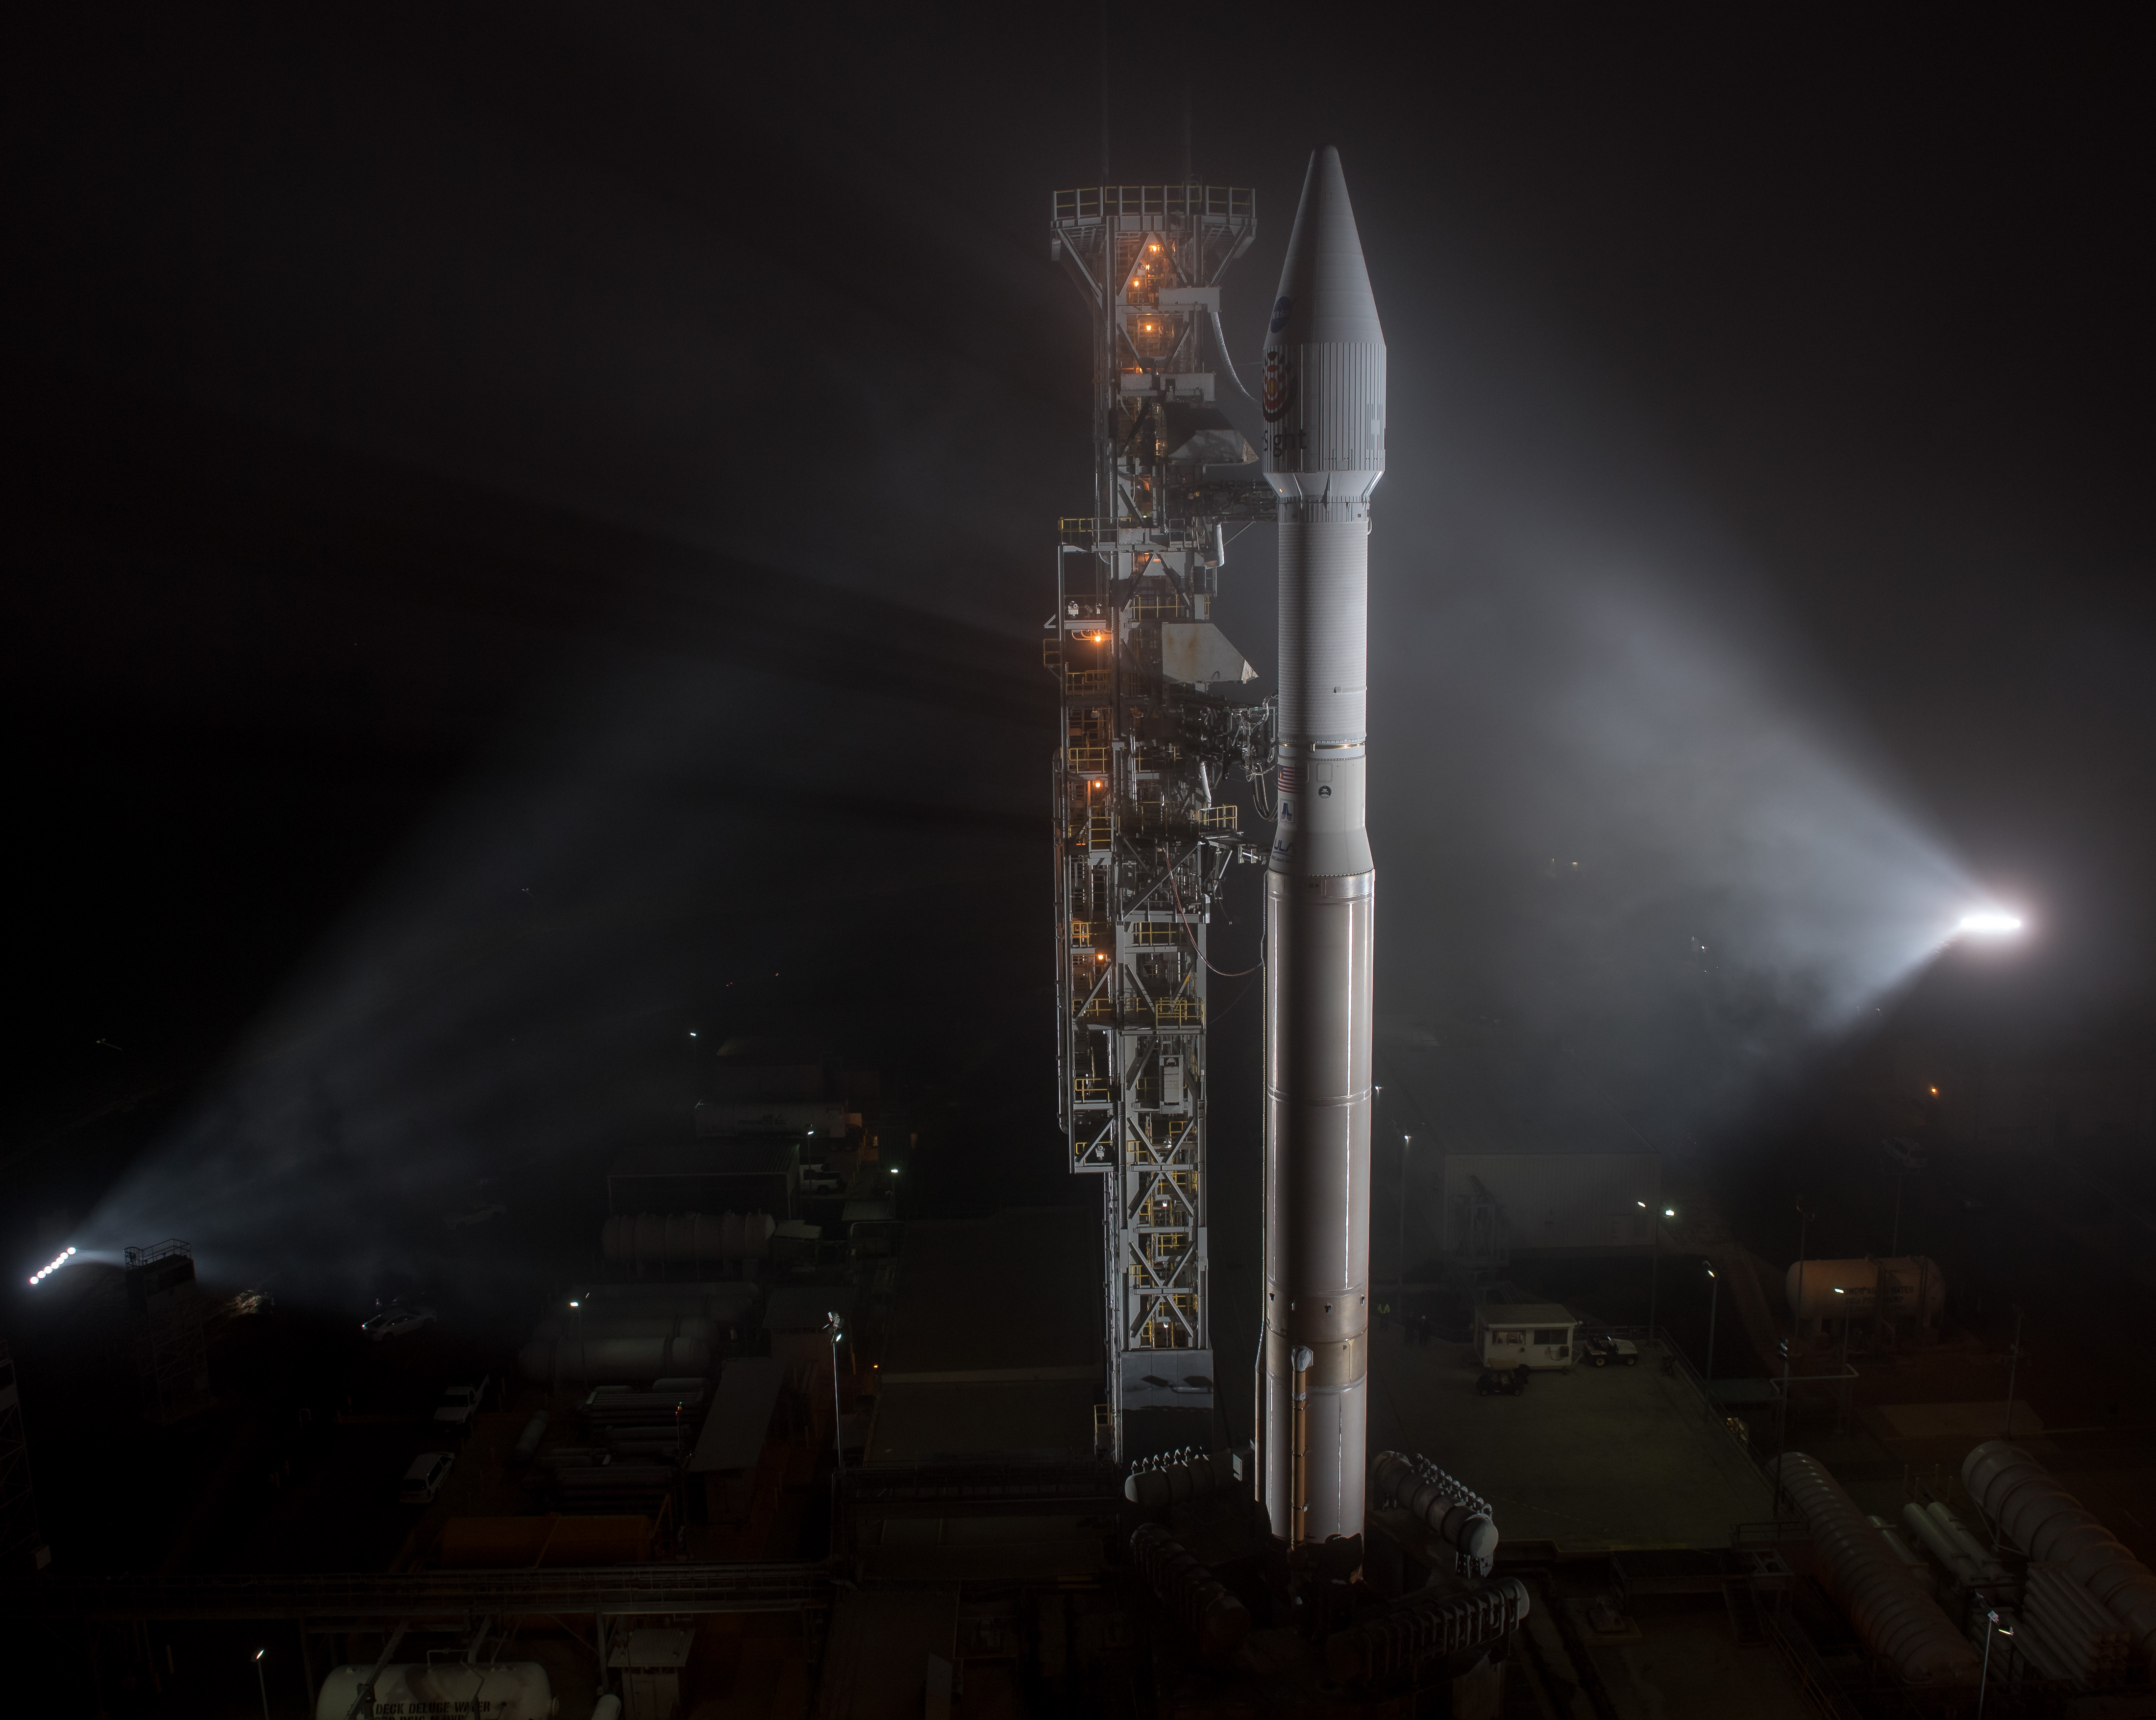 Spotlights on rocket on the launchpad.